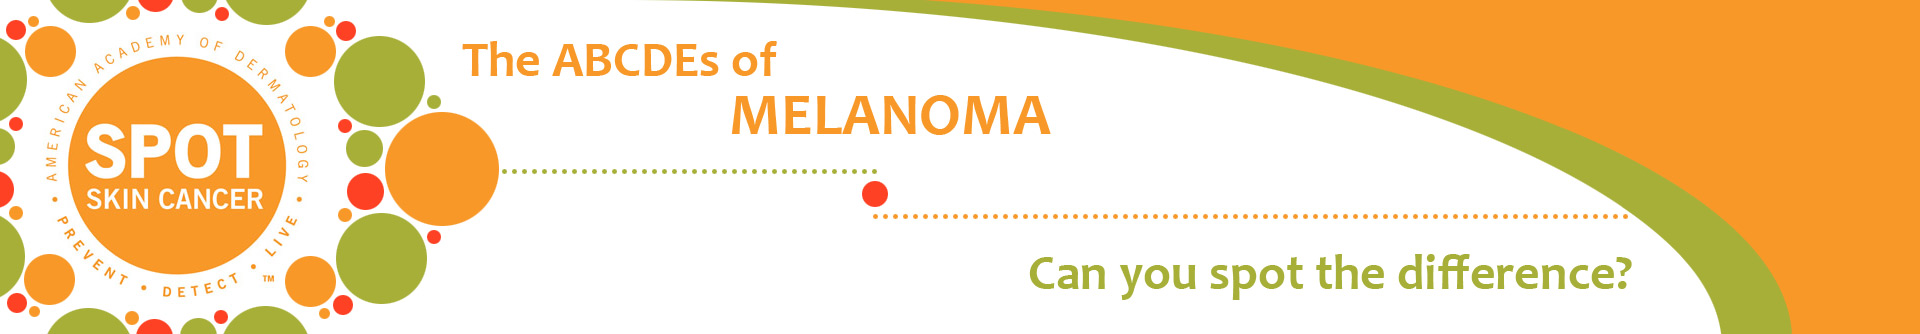 The ABCDEs of Melanoma